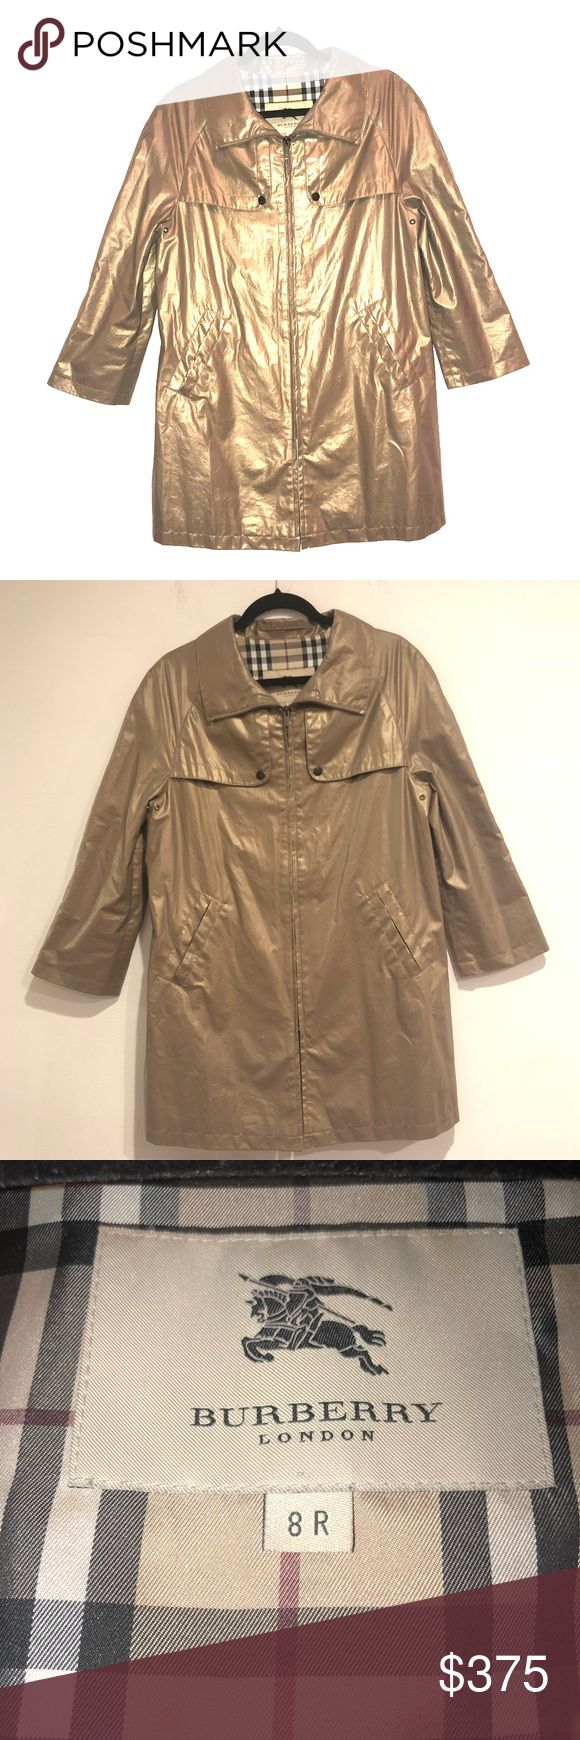 Burberry London Metallic Gold Rain Coat Woman's 8 Burberry London Light Weight Rain Coat in Metallic Gold/Taupe. Lightweight zip up jacket.  Seasonal Burberry Jacket. Jersey inside with classic Burberry print. Small stain on inside not noticeable. Burberry Jackets & Coats